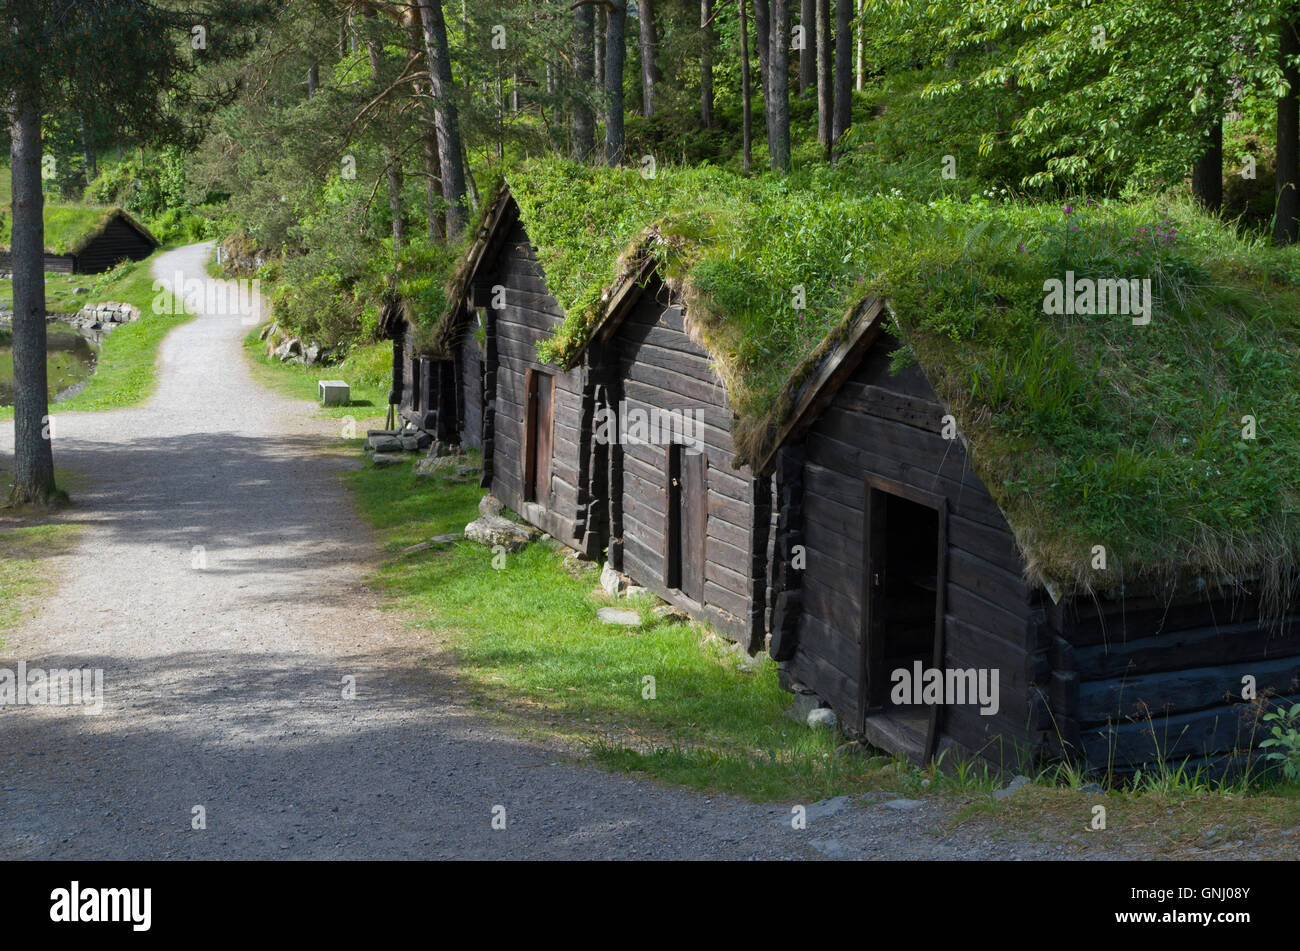 Old wooden buildings at the Sunnmore Open Air Museum, Alesund, Norway - Stock Image